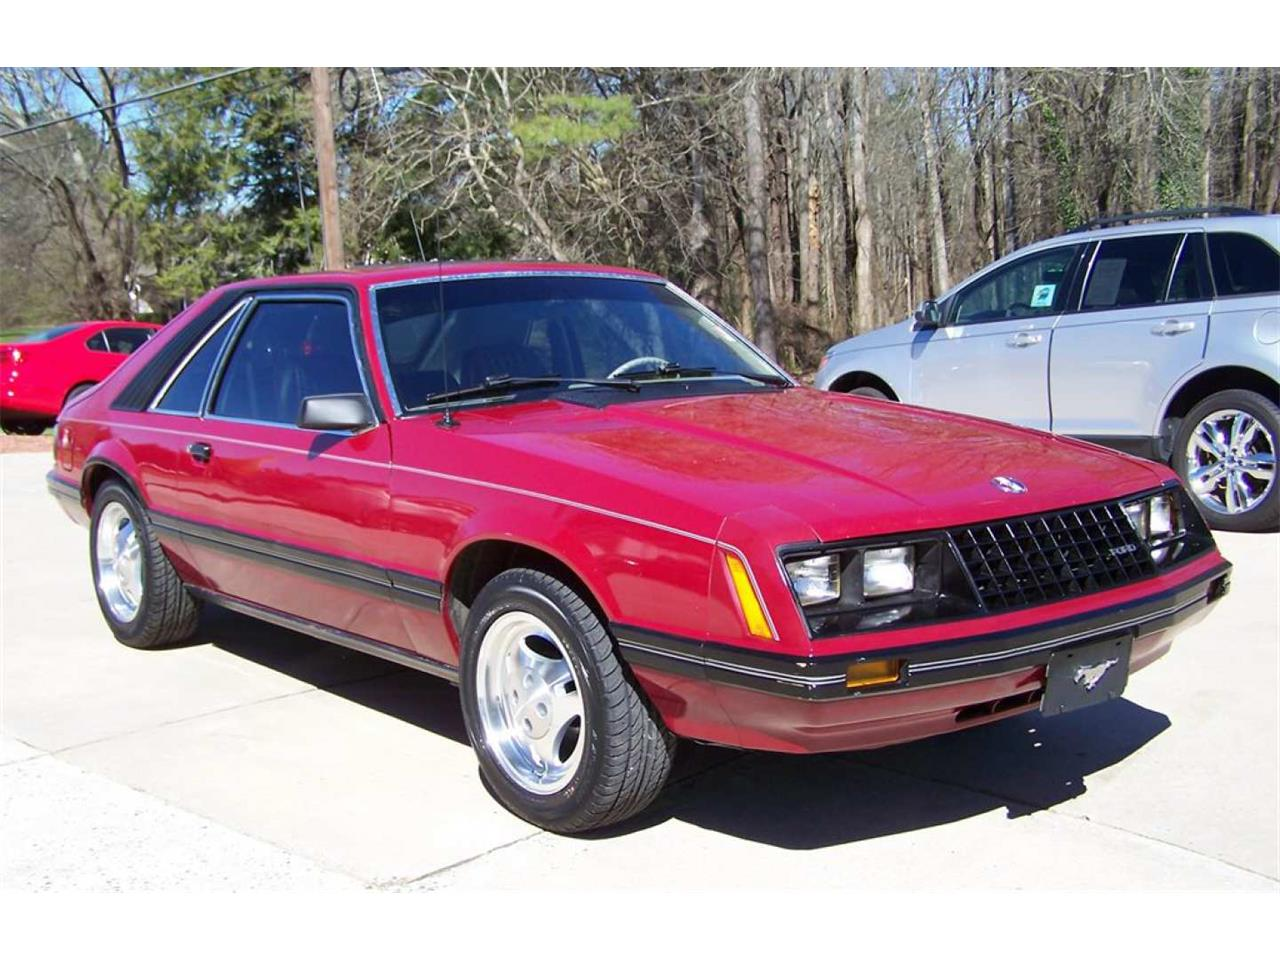 Large Picture of 1981 Ford Mustang located in Louisiana - Q5RH